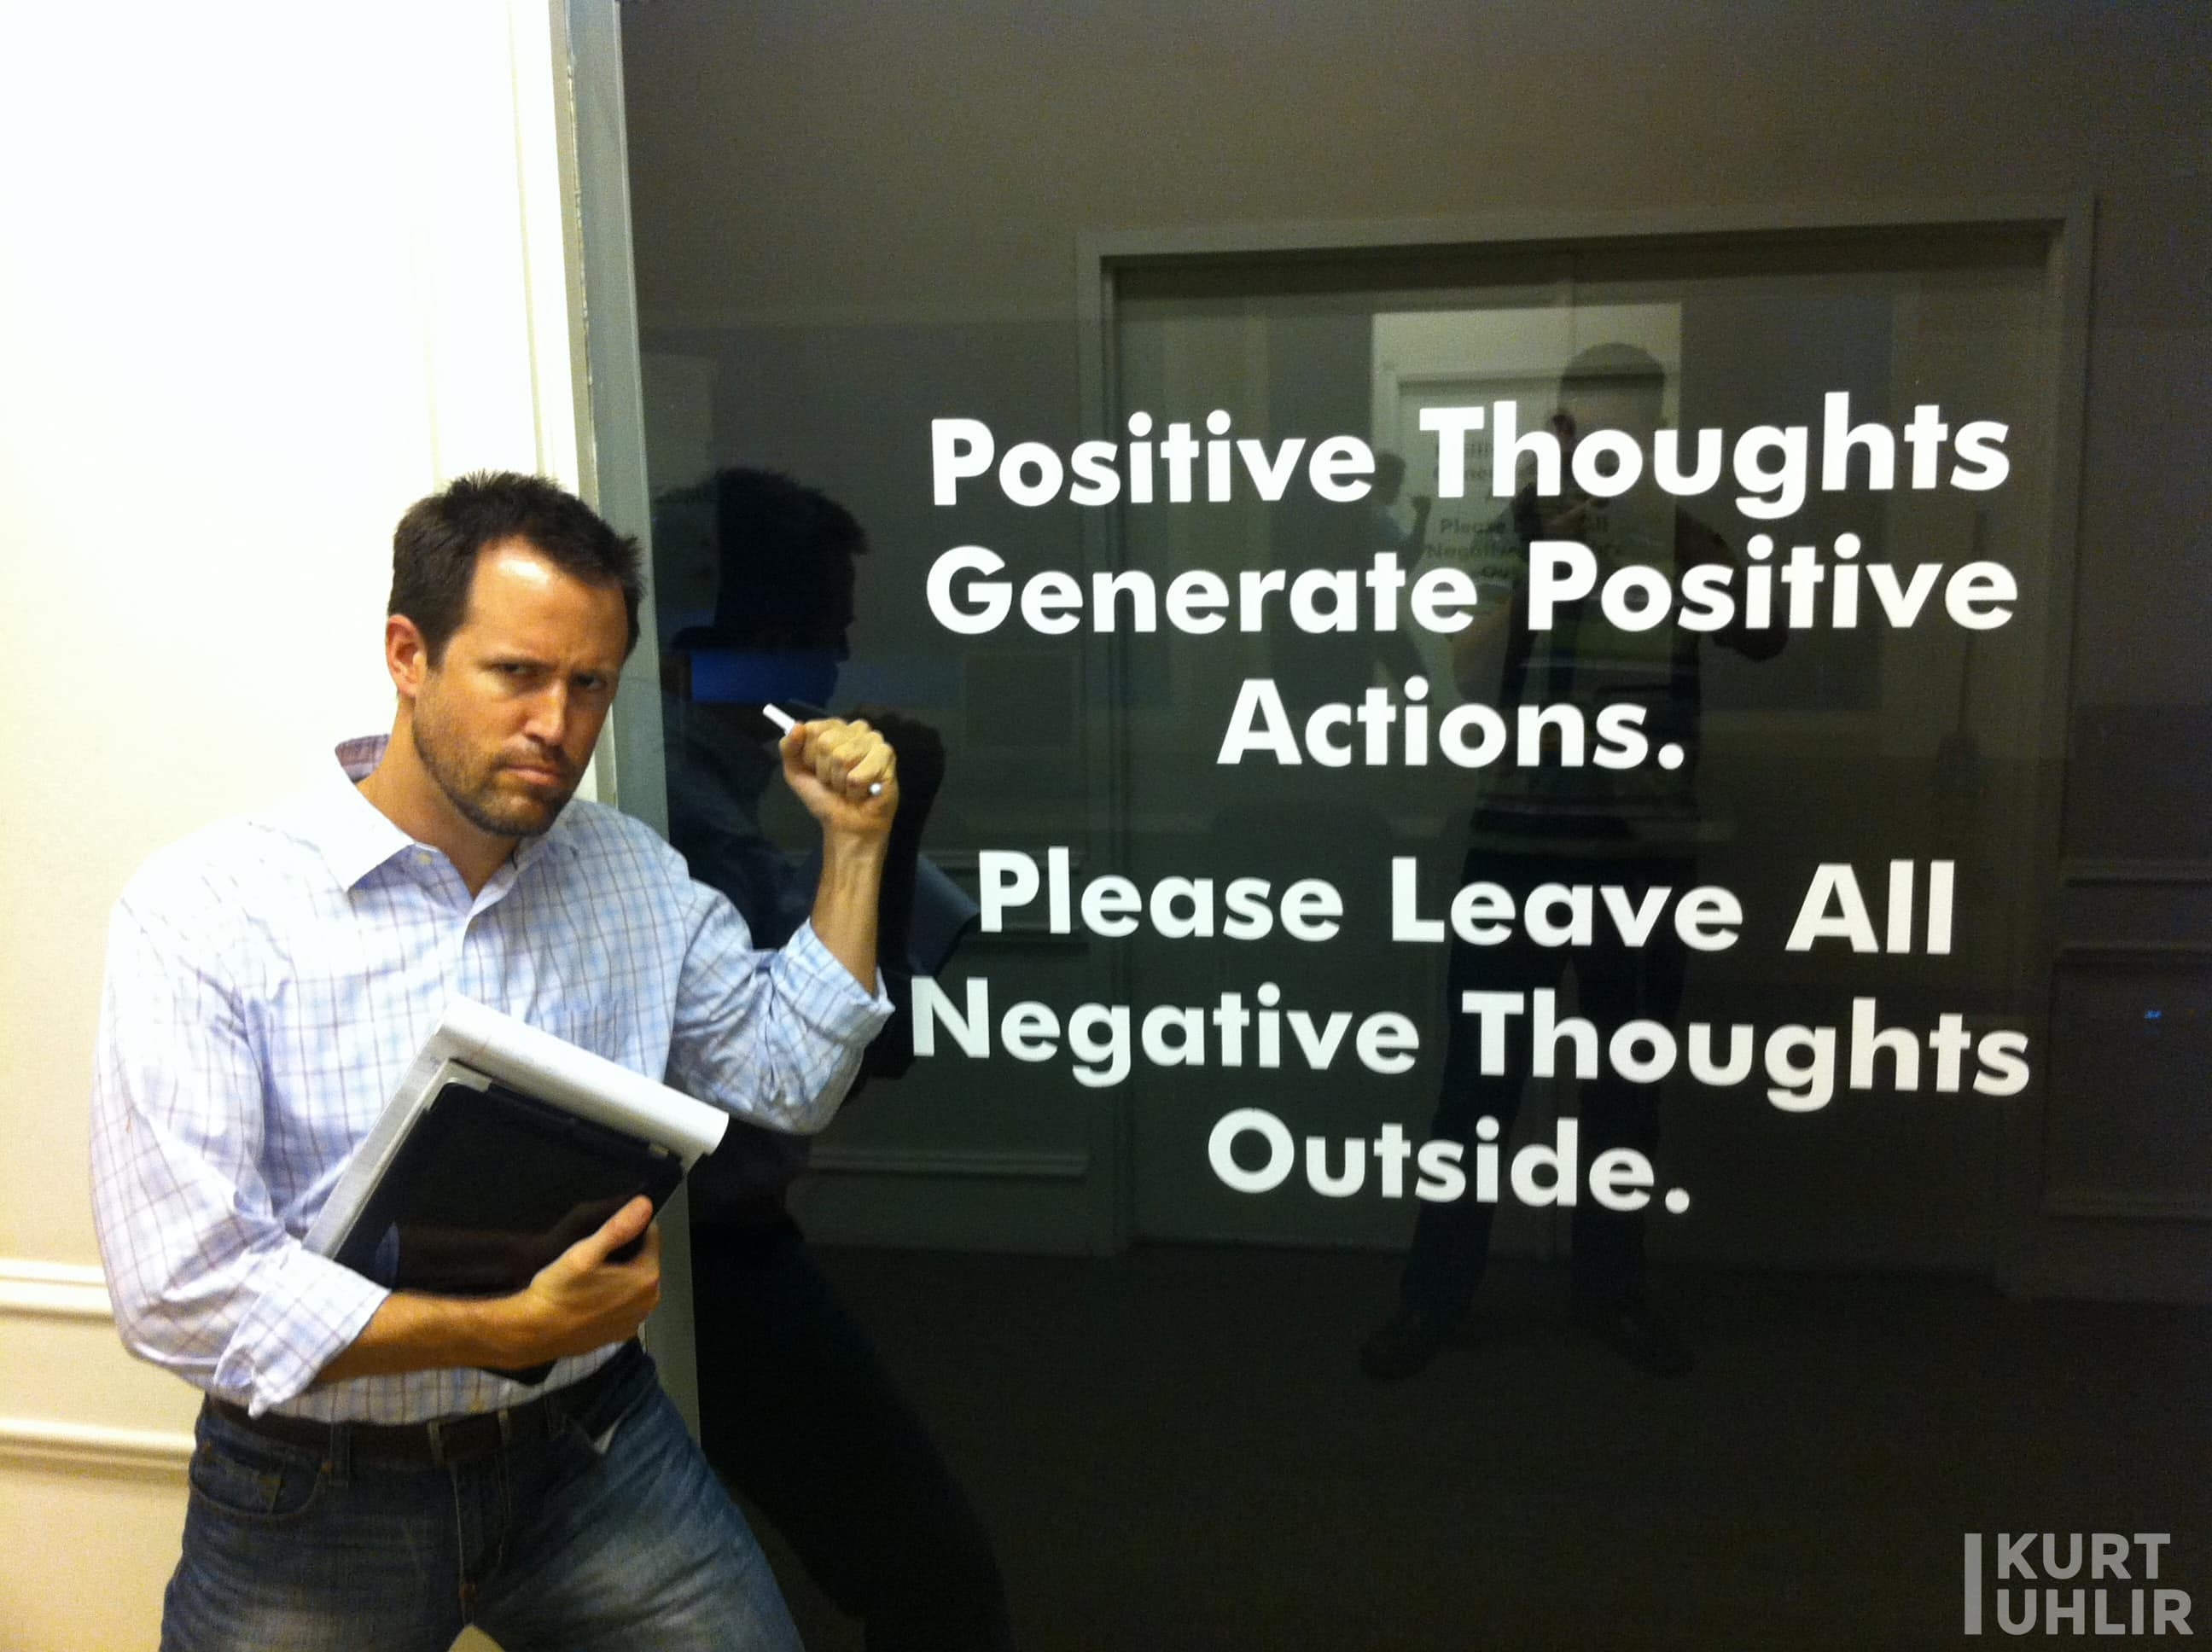 Kurt Uhlir having fun while doing customer discovery. Sign - Positive thoughts generate positive actions. Please leave all negative thoughts outside.